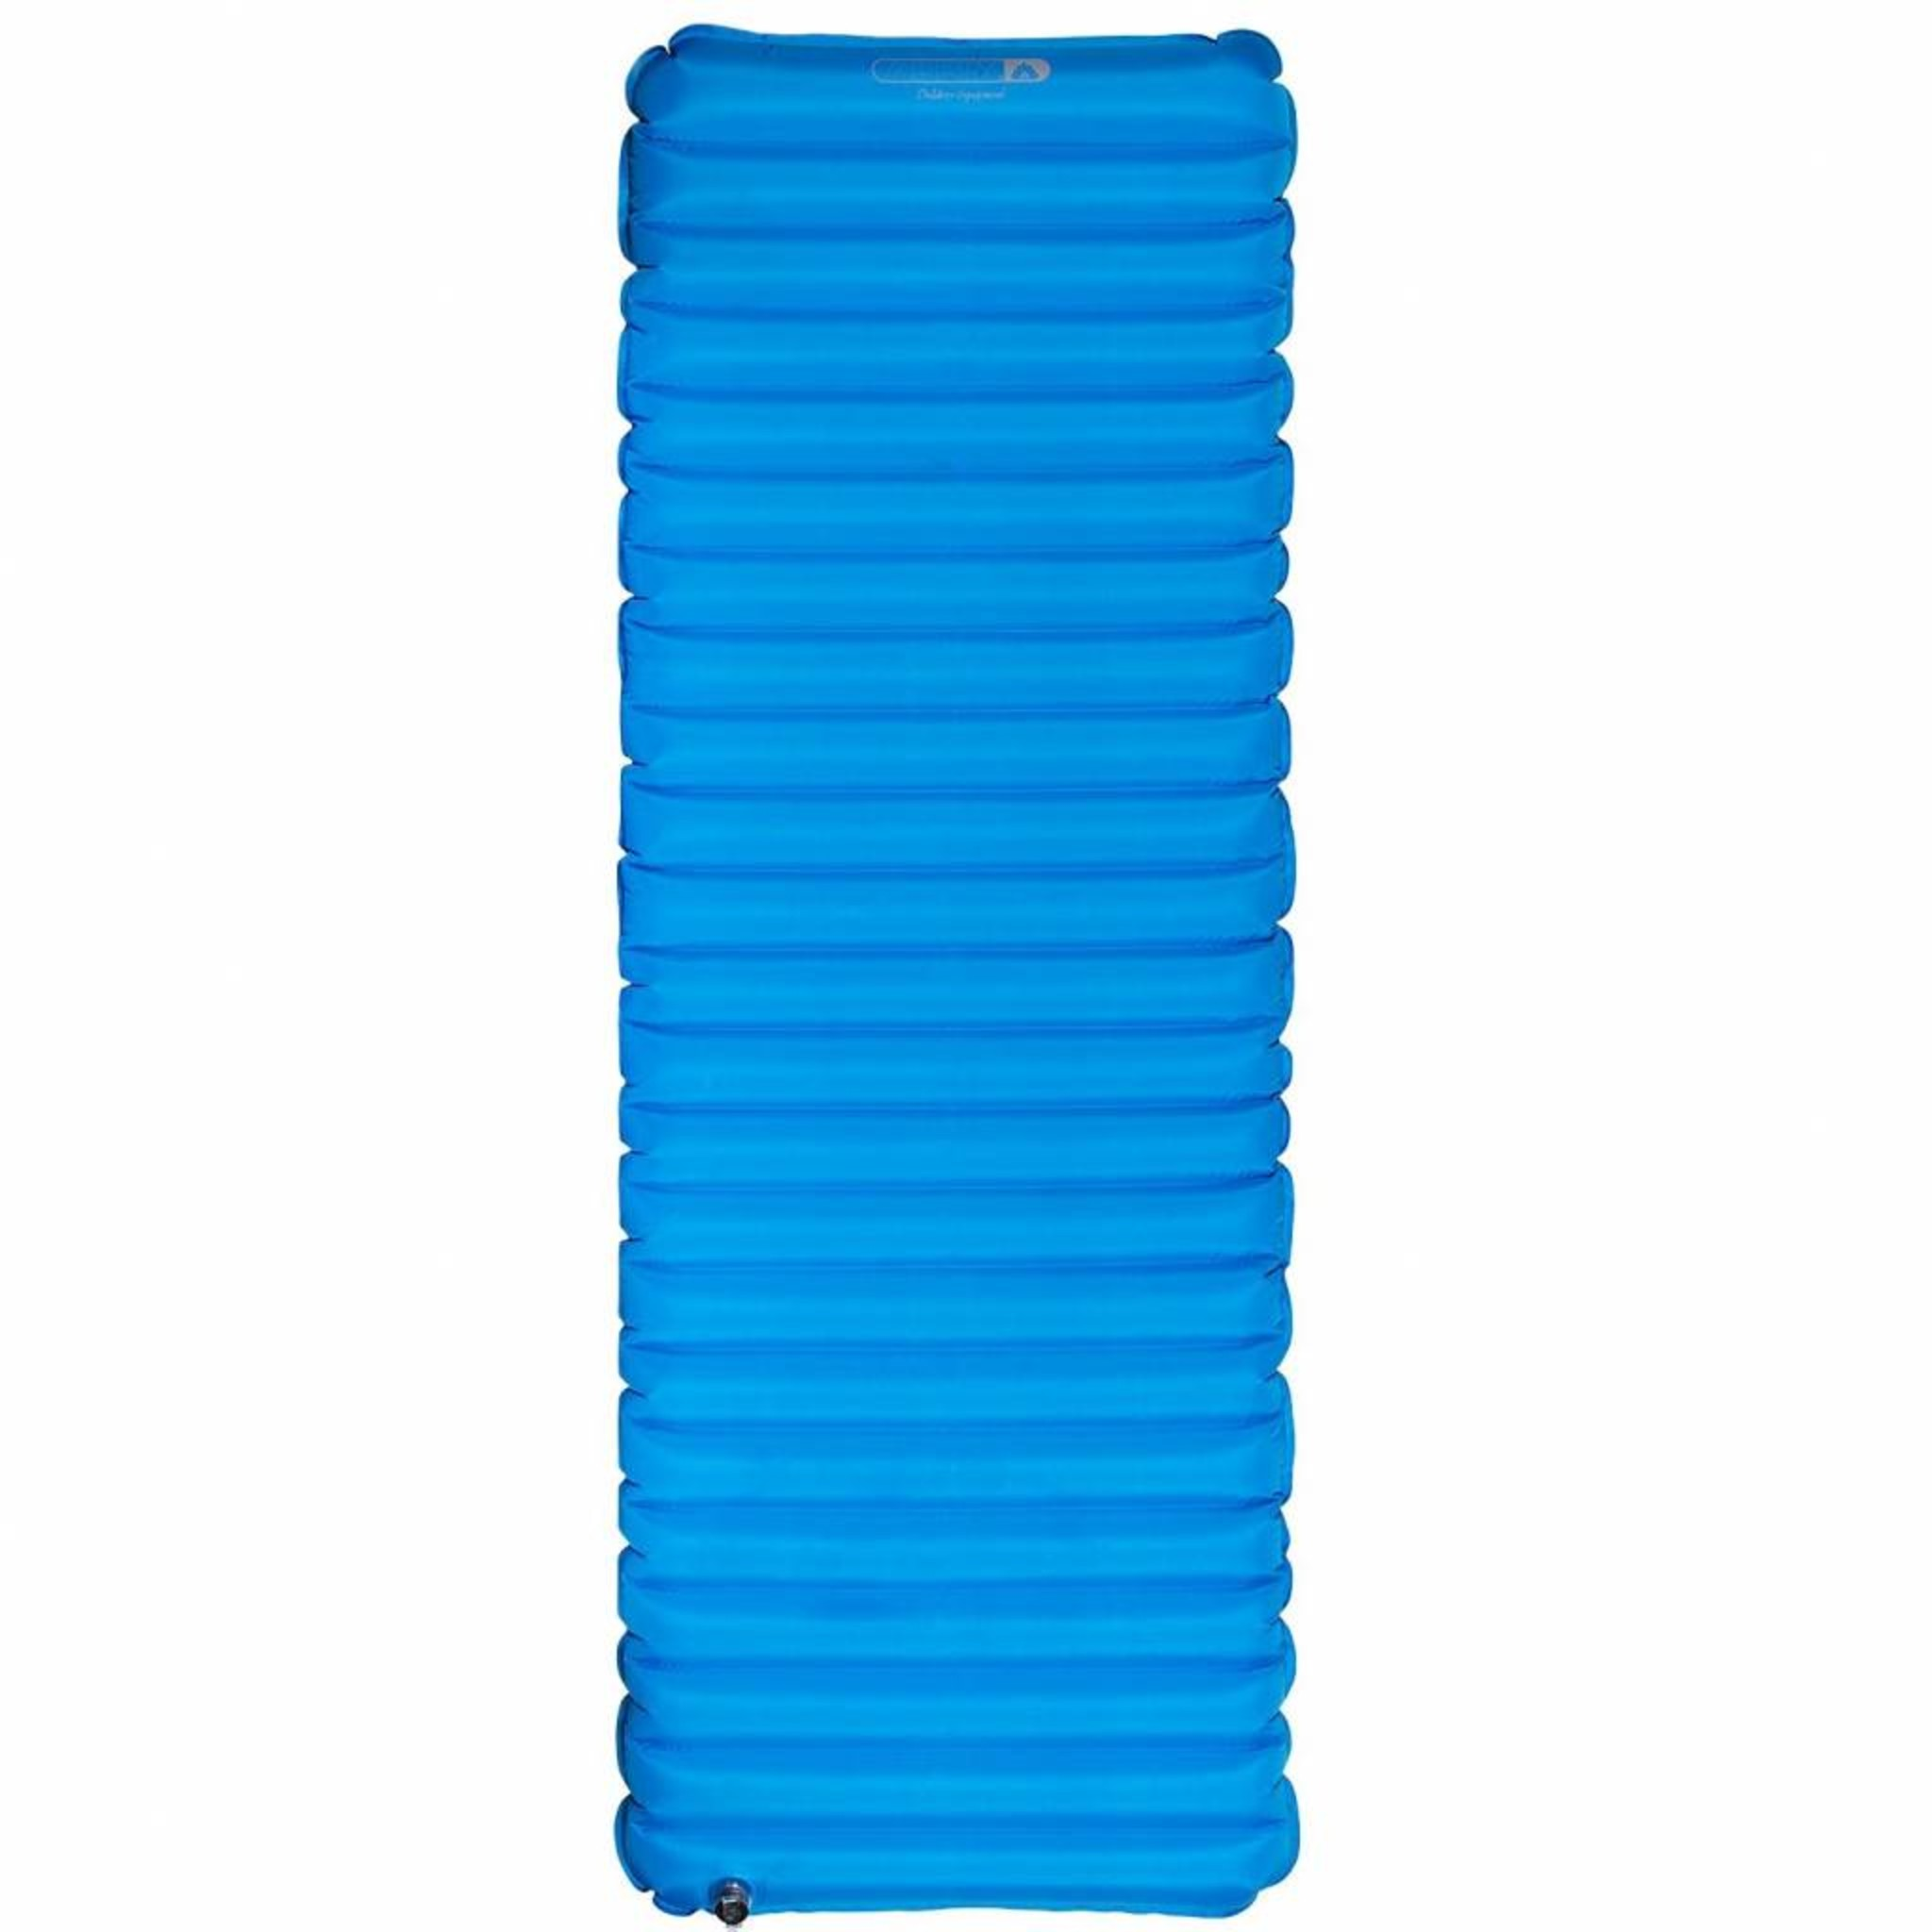 Abbey Camp® Compact Eenpersoons Luchtbed 193x70x9cm Blauw